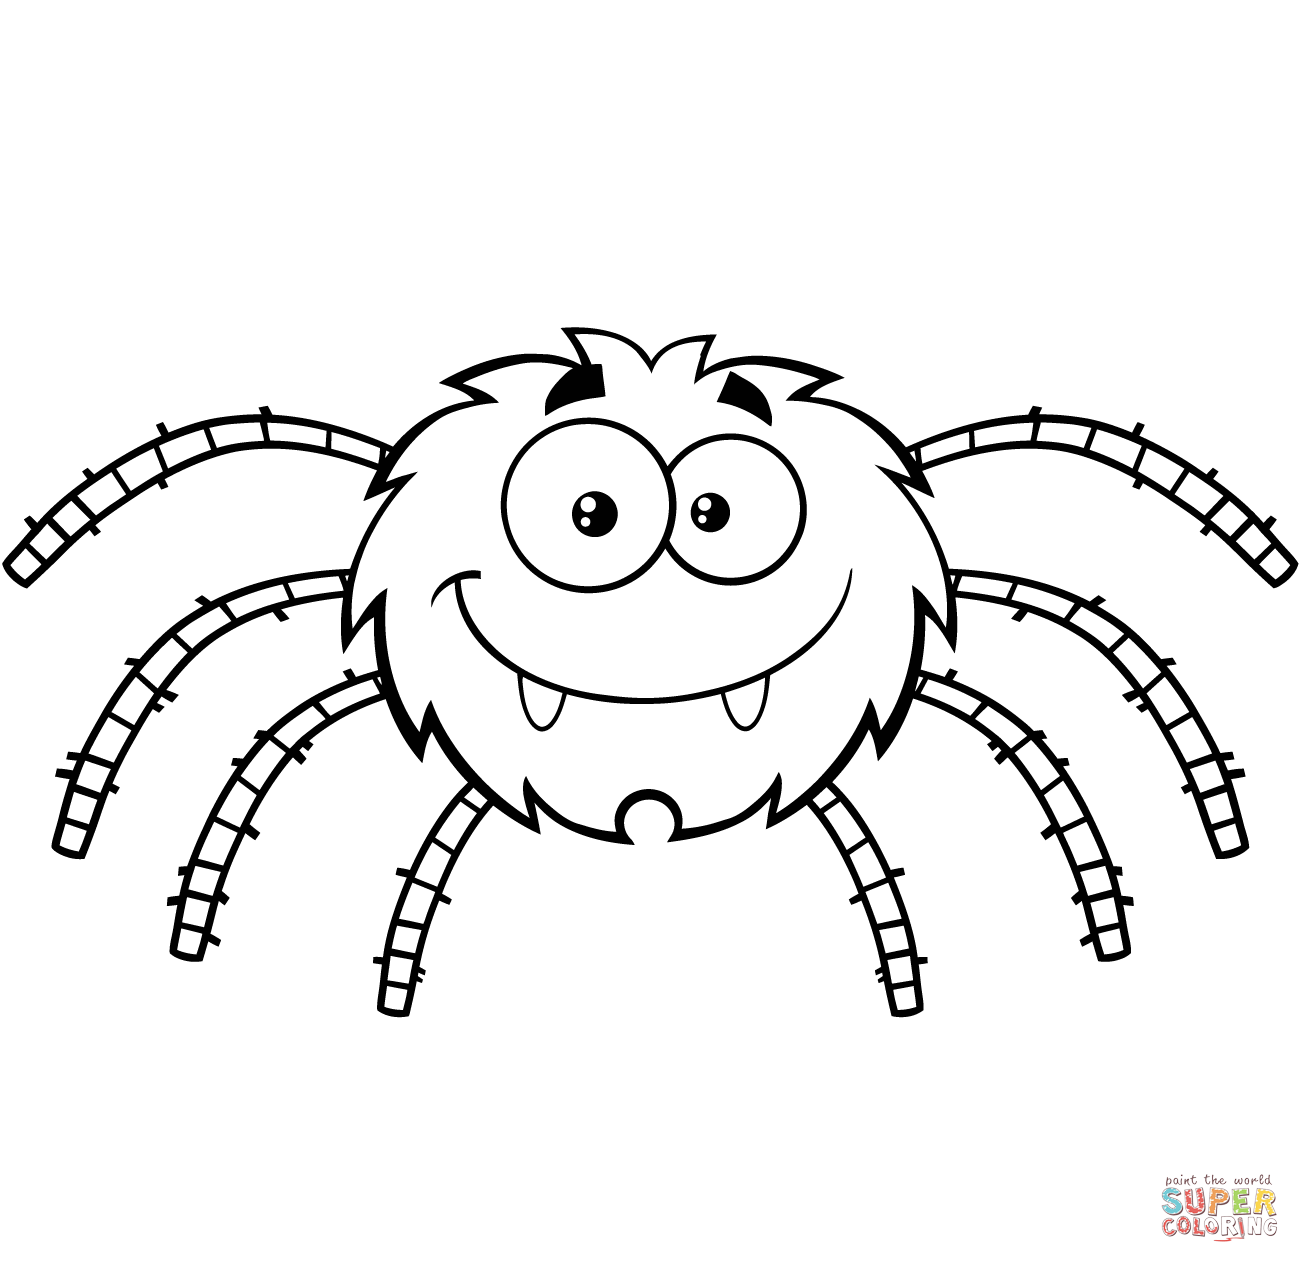 Attirant Funny Cartoon Spider Coloring Page From Spider Category. Select From 27115  Printable Crafts Of Cartoons